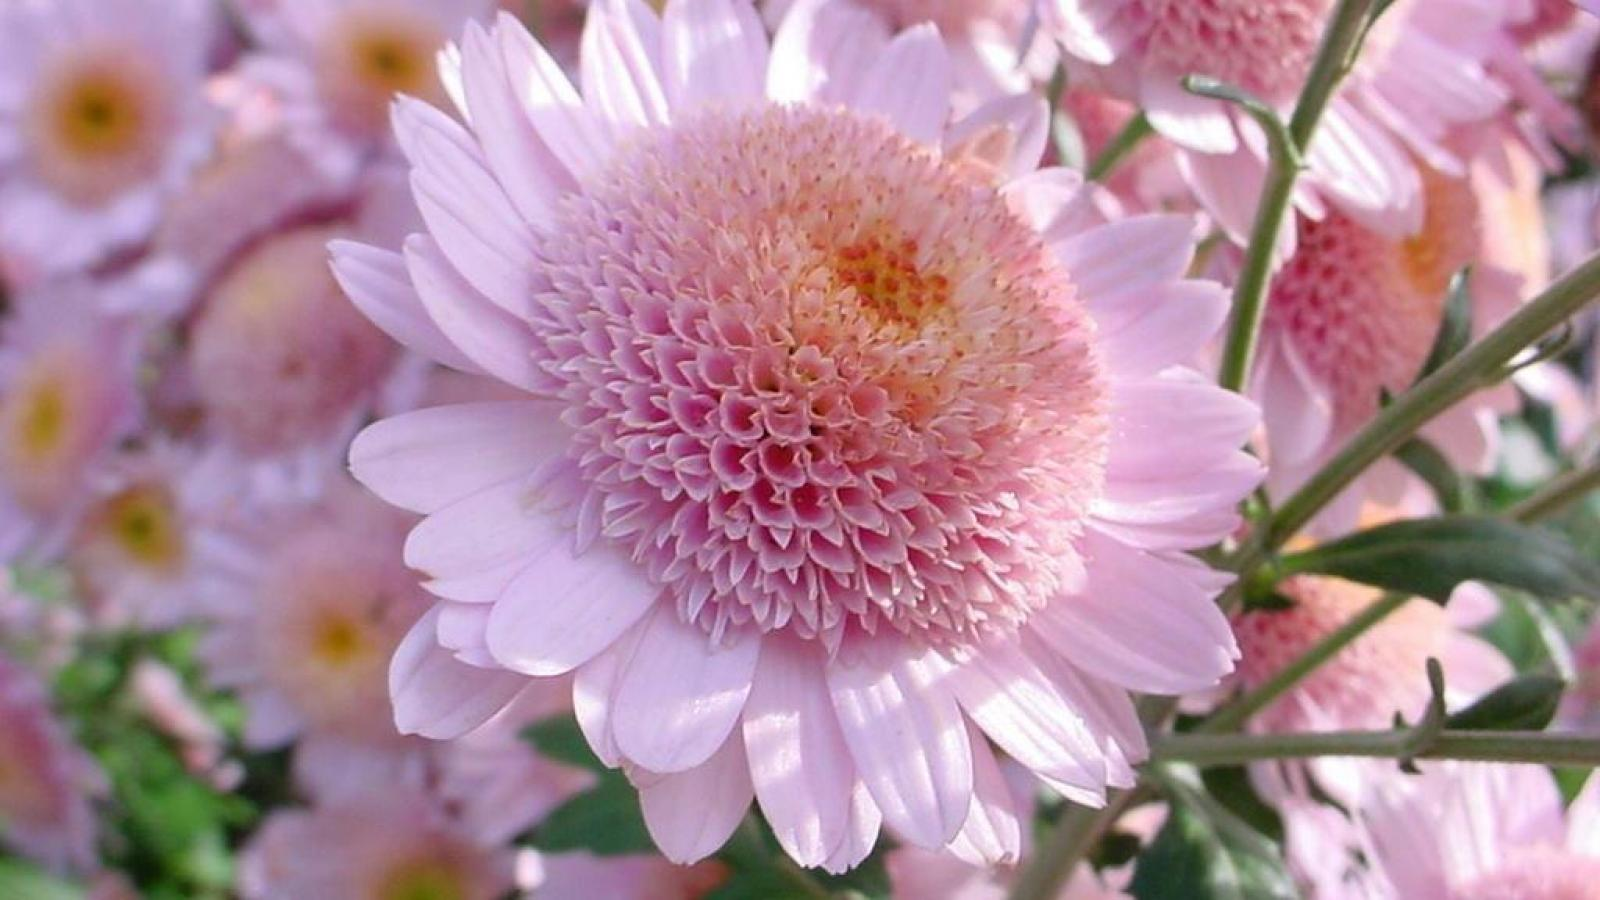 Widescreen resolutions (16:10): 1280x800 1440x900 1680x1050 1920x1200. Normal resolutions: 1024x768 1280x1024. Wallpaper Tags: petal flower chrysanthemum ...